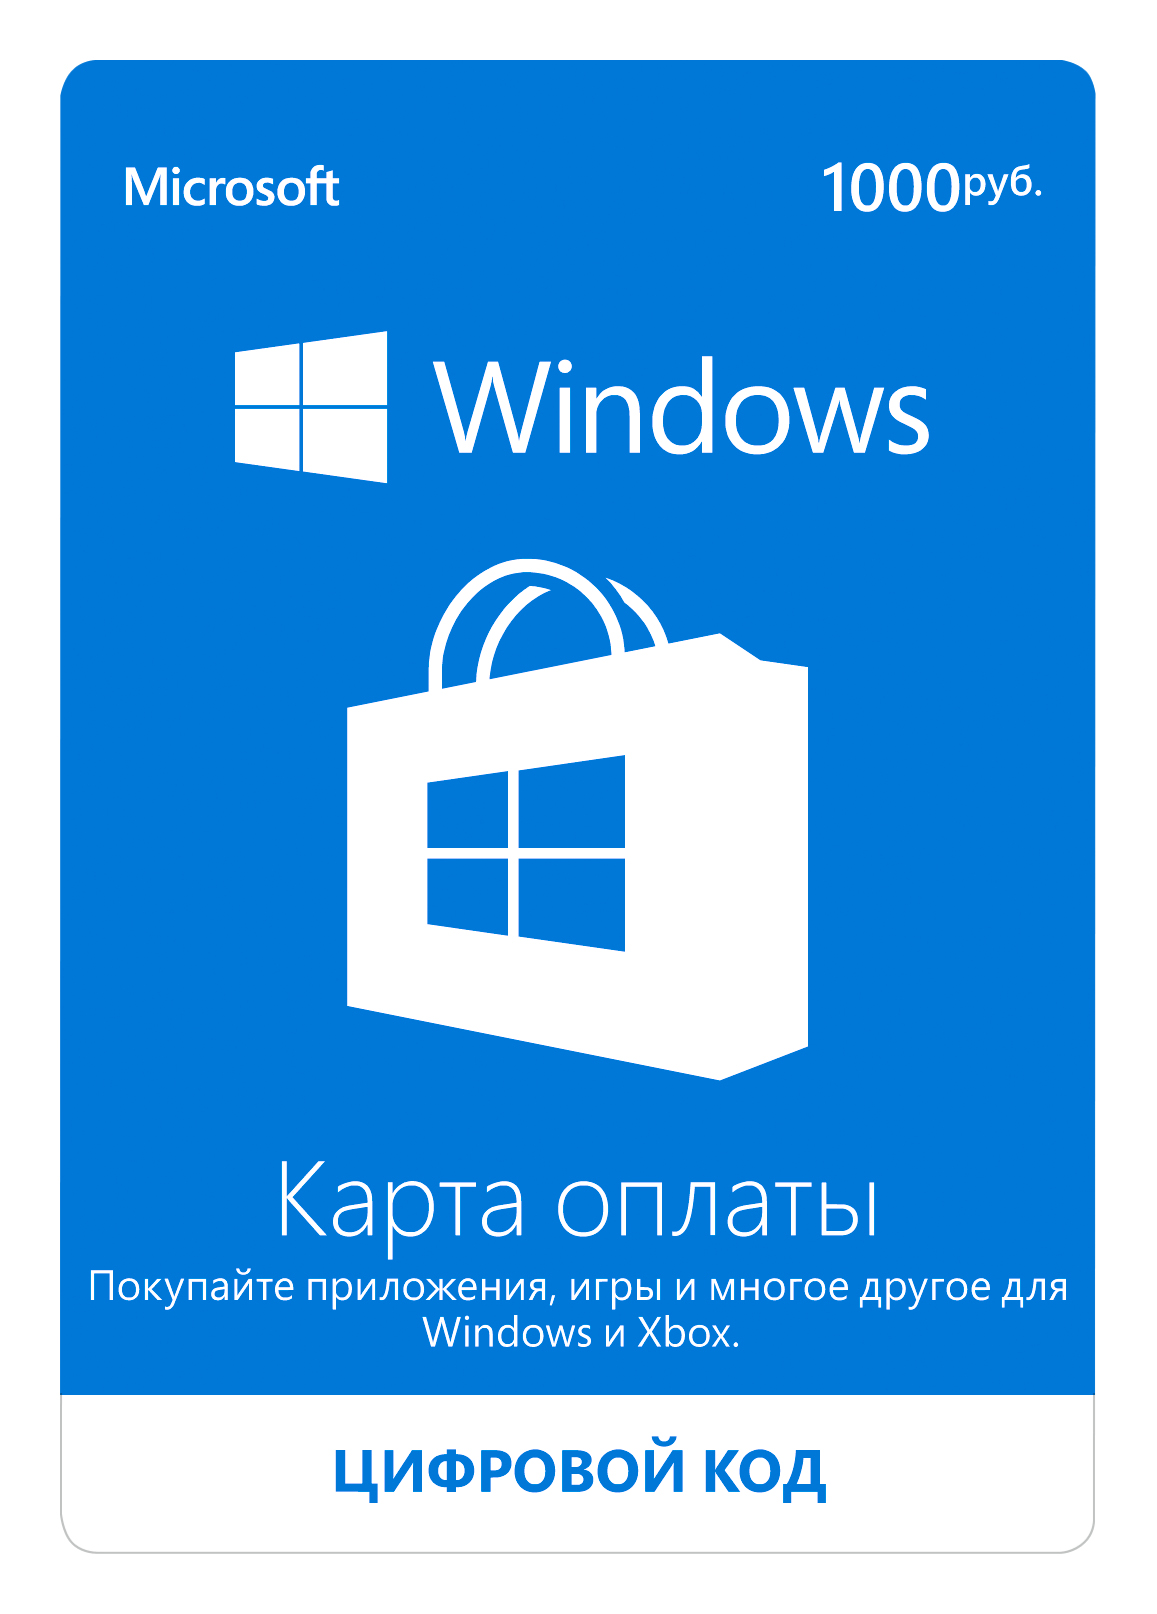 Payment card Windows 1000 RUB (Store Windows/Xbox Live)